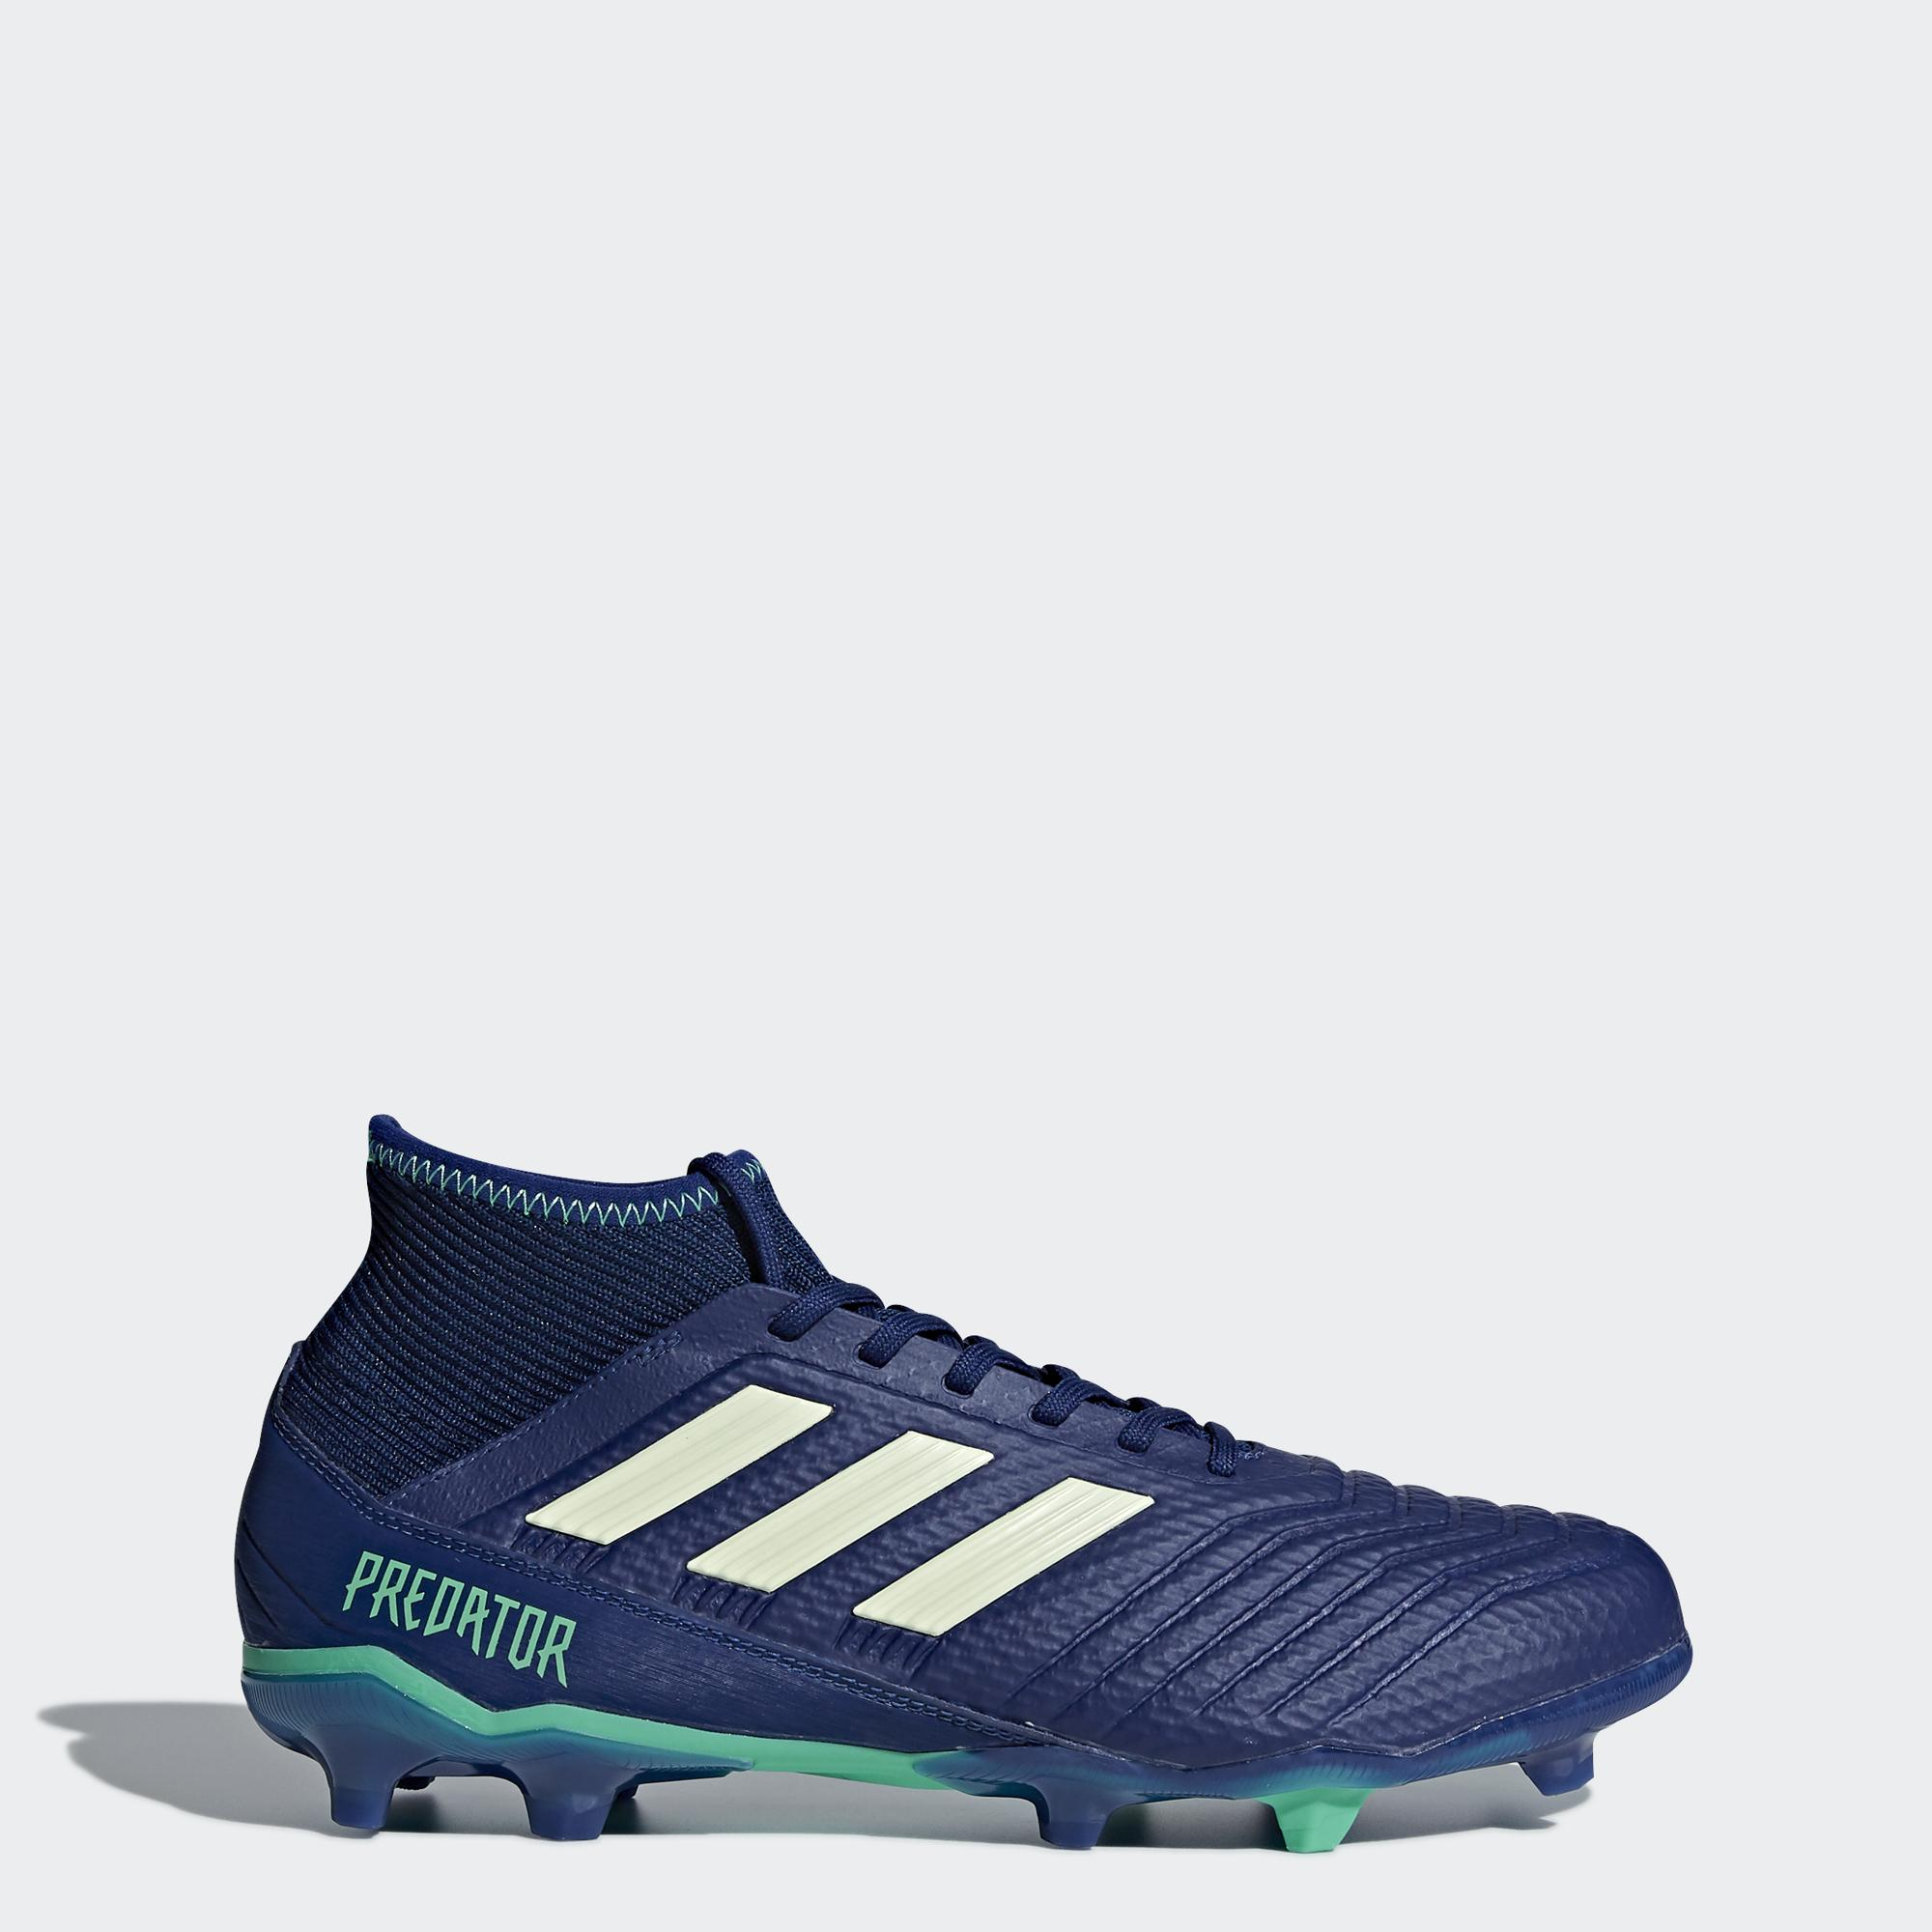 Fg Adidas Shoes 3 Predator 18 Football CBrdxeWo